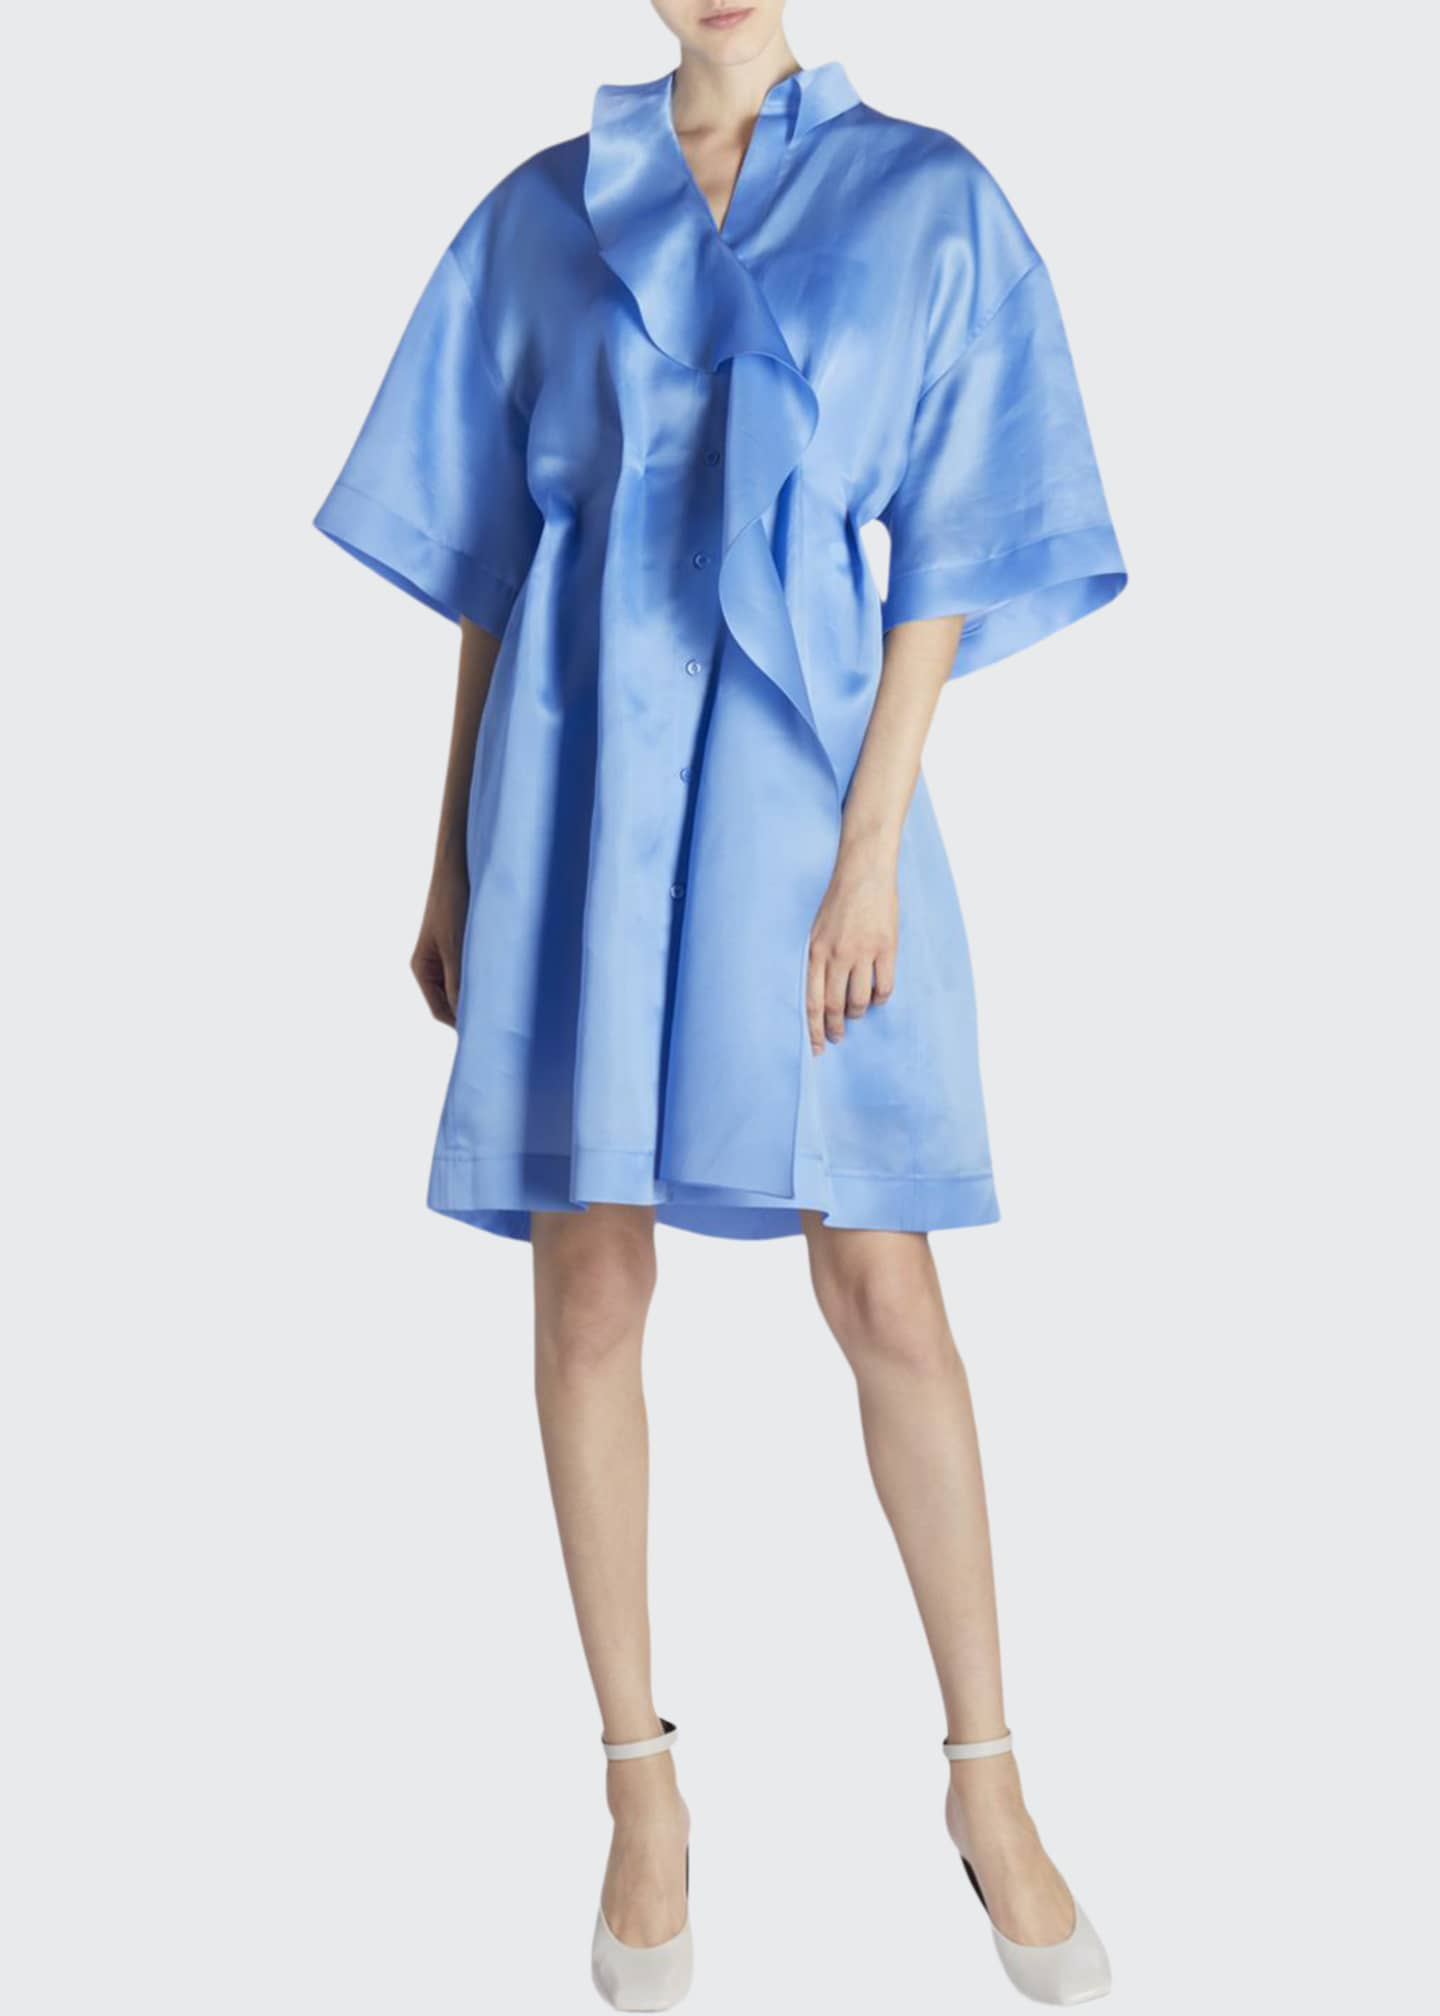 Nina Ricci Ruffled-Silk Oversized Shirtdress